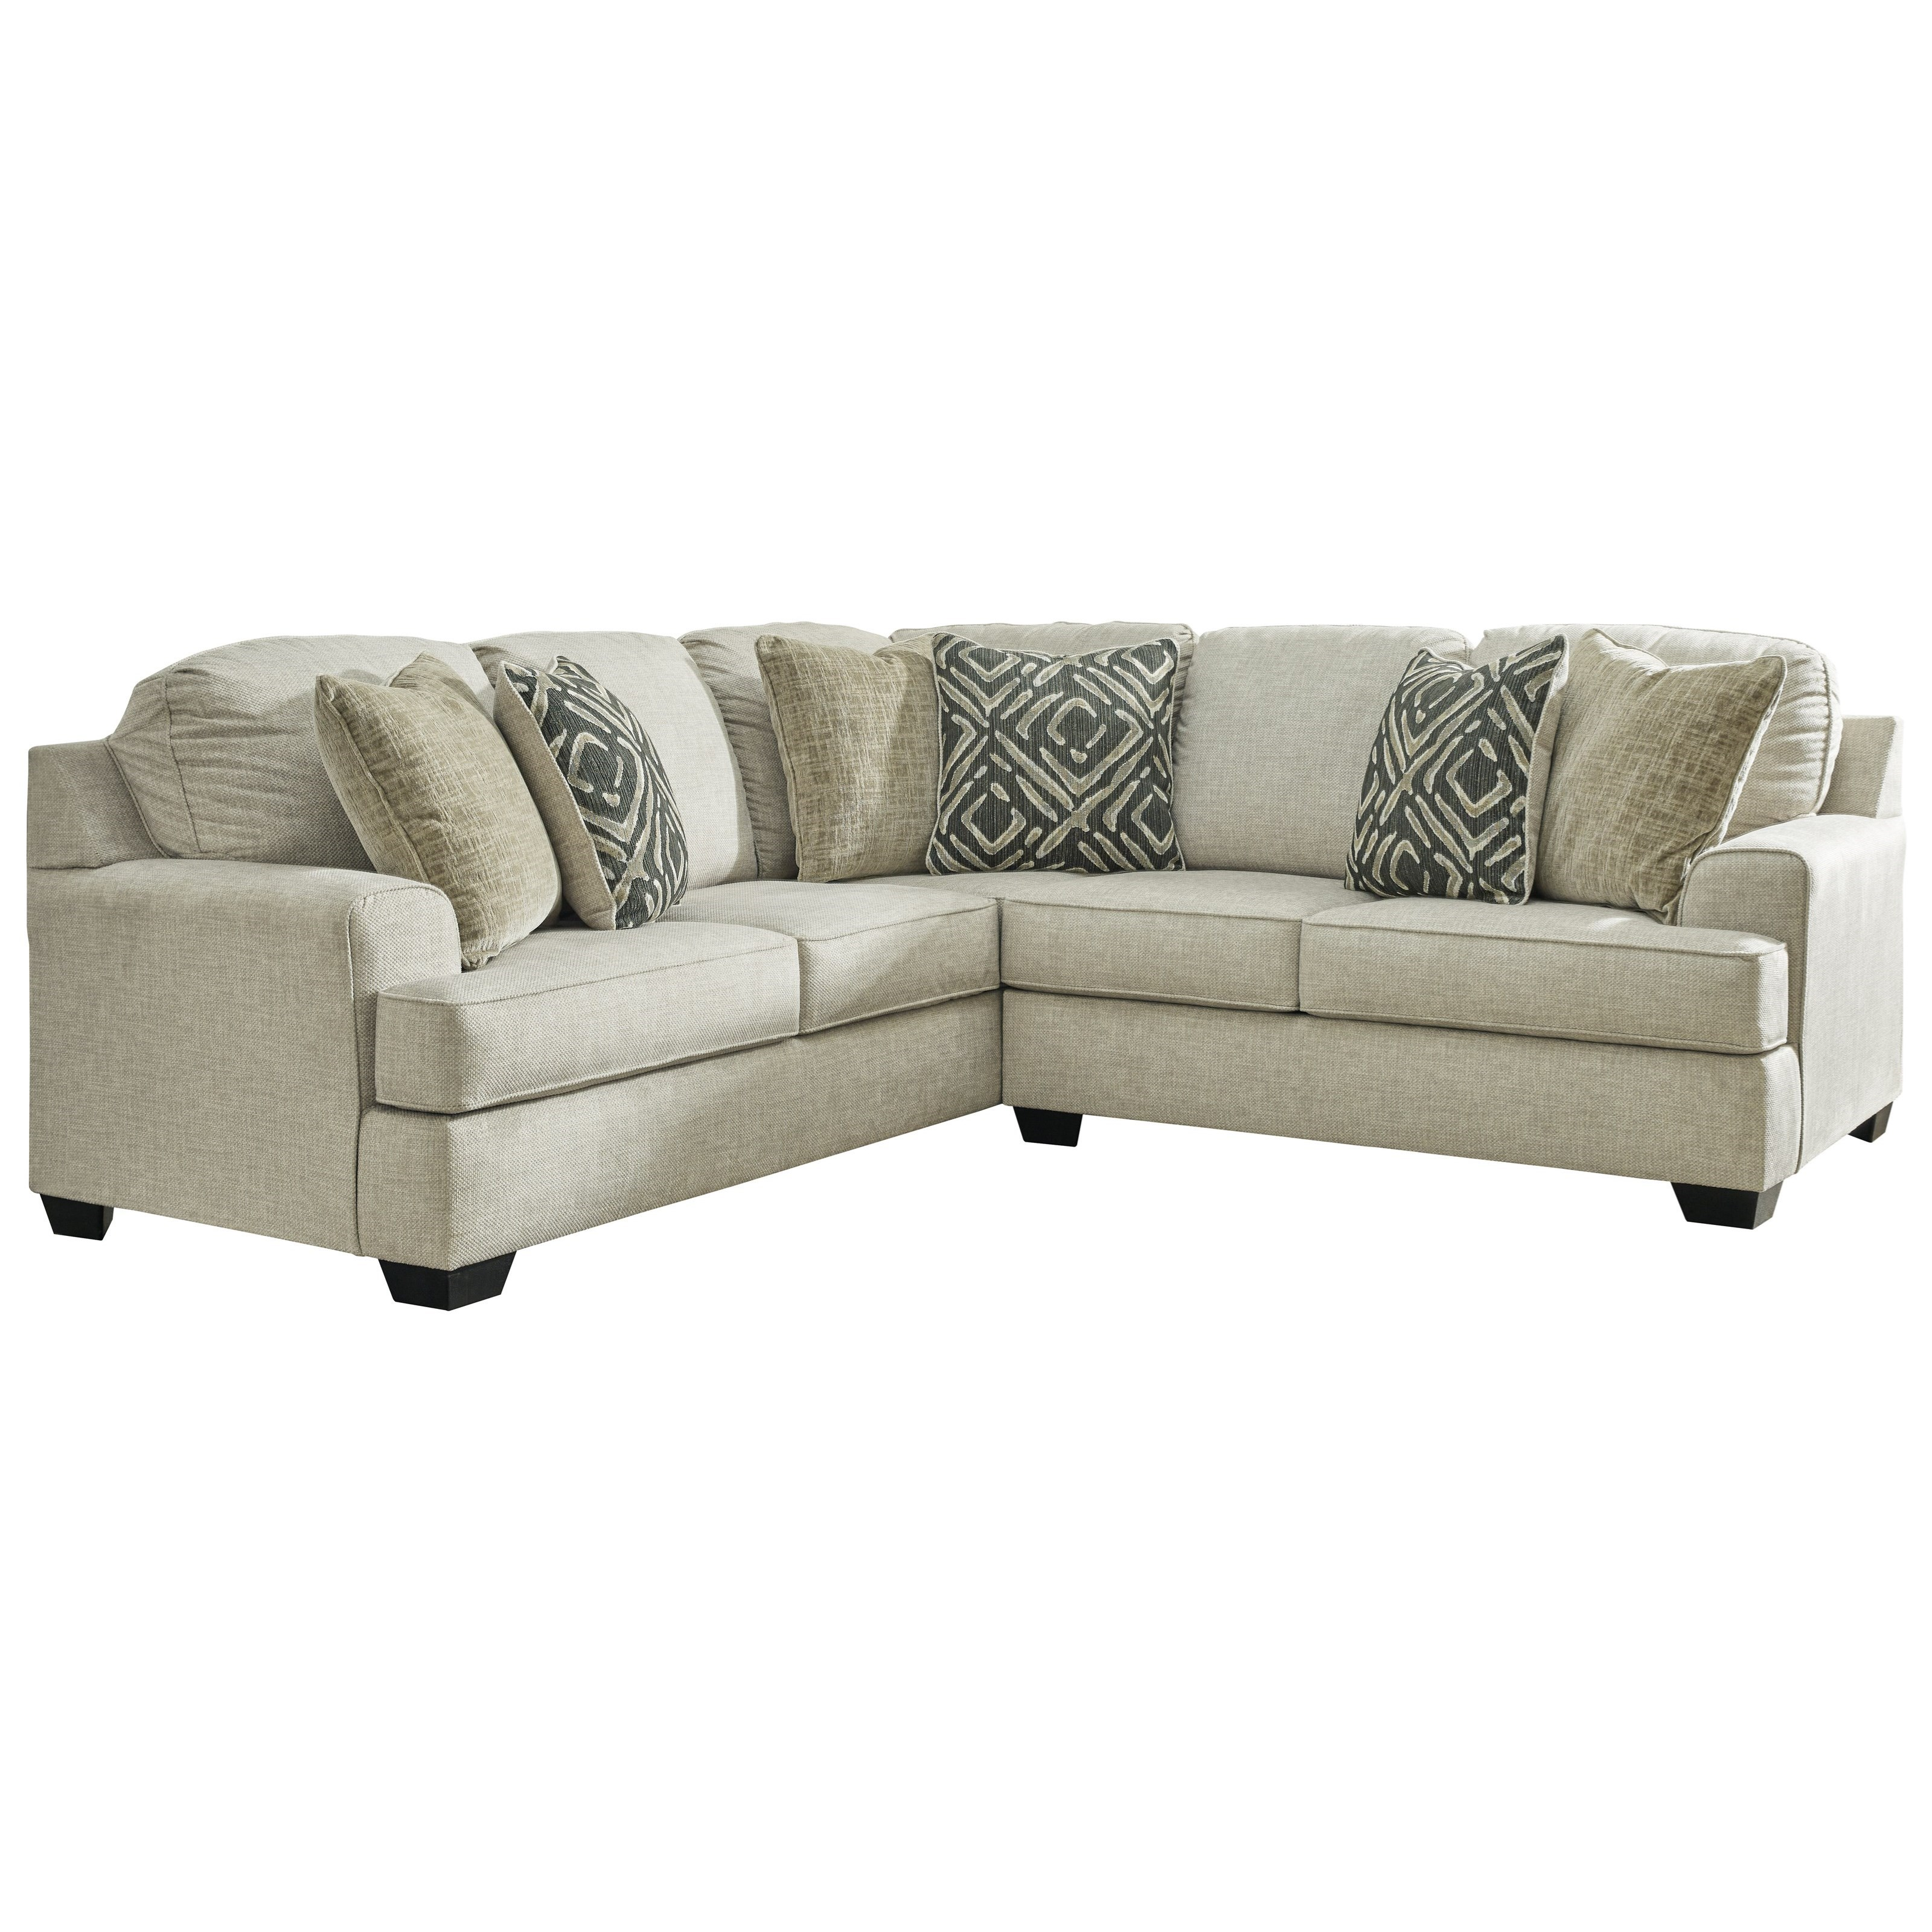 Wellhaven 2-Piece Sectional by Benchcraft at Walker's Furniture